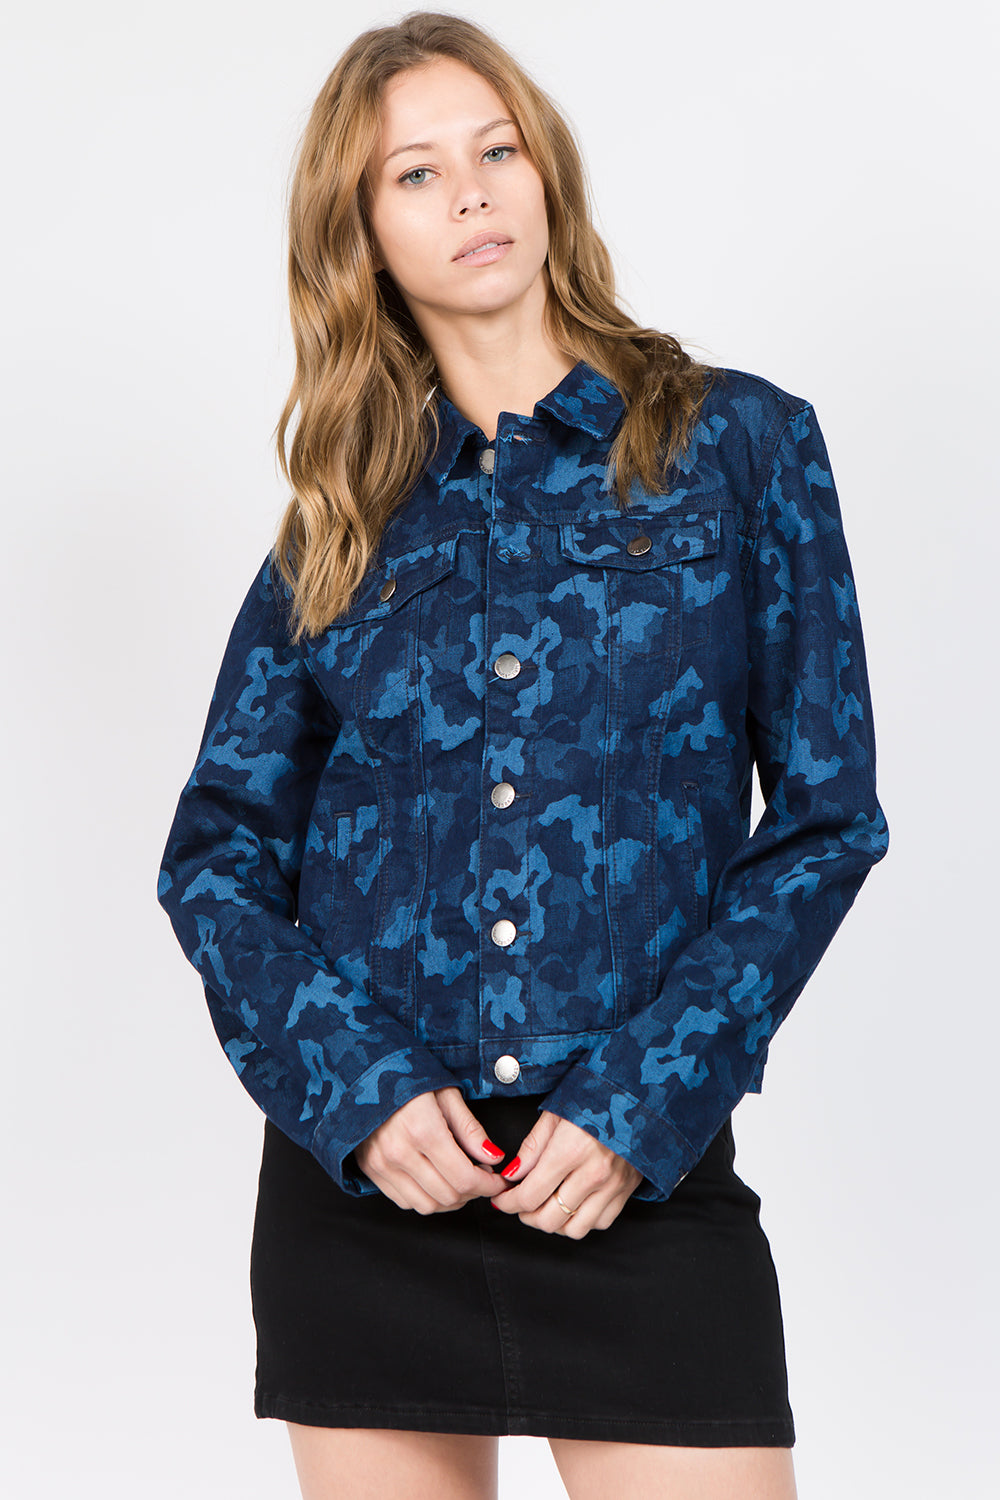 Camouflage In The Blue City Jacket  l  LoveModa